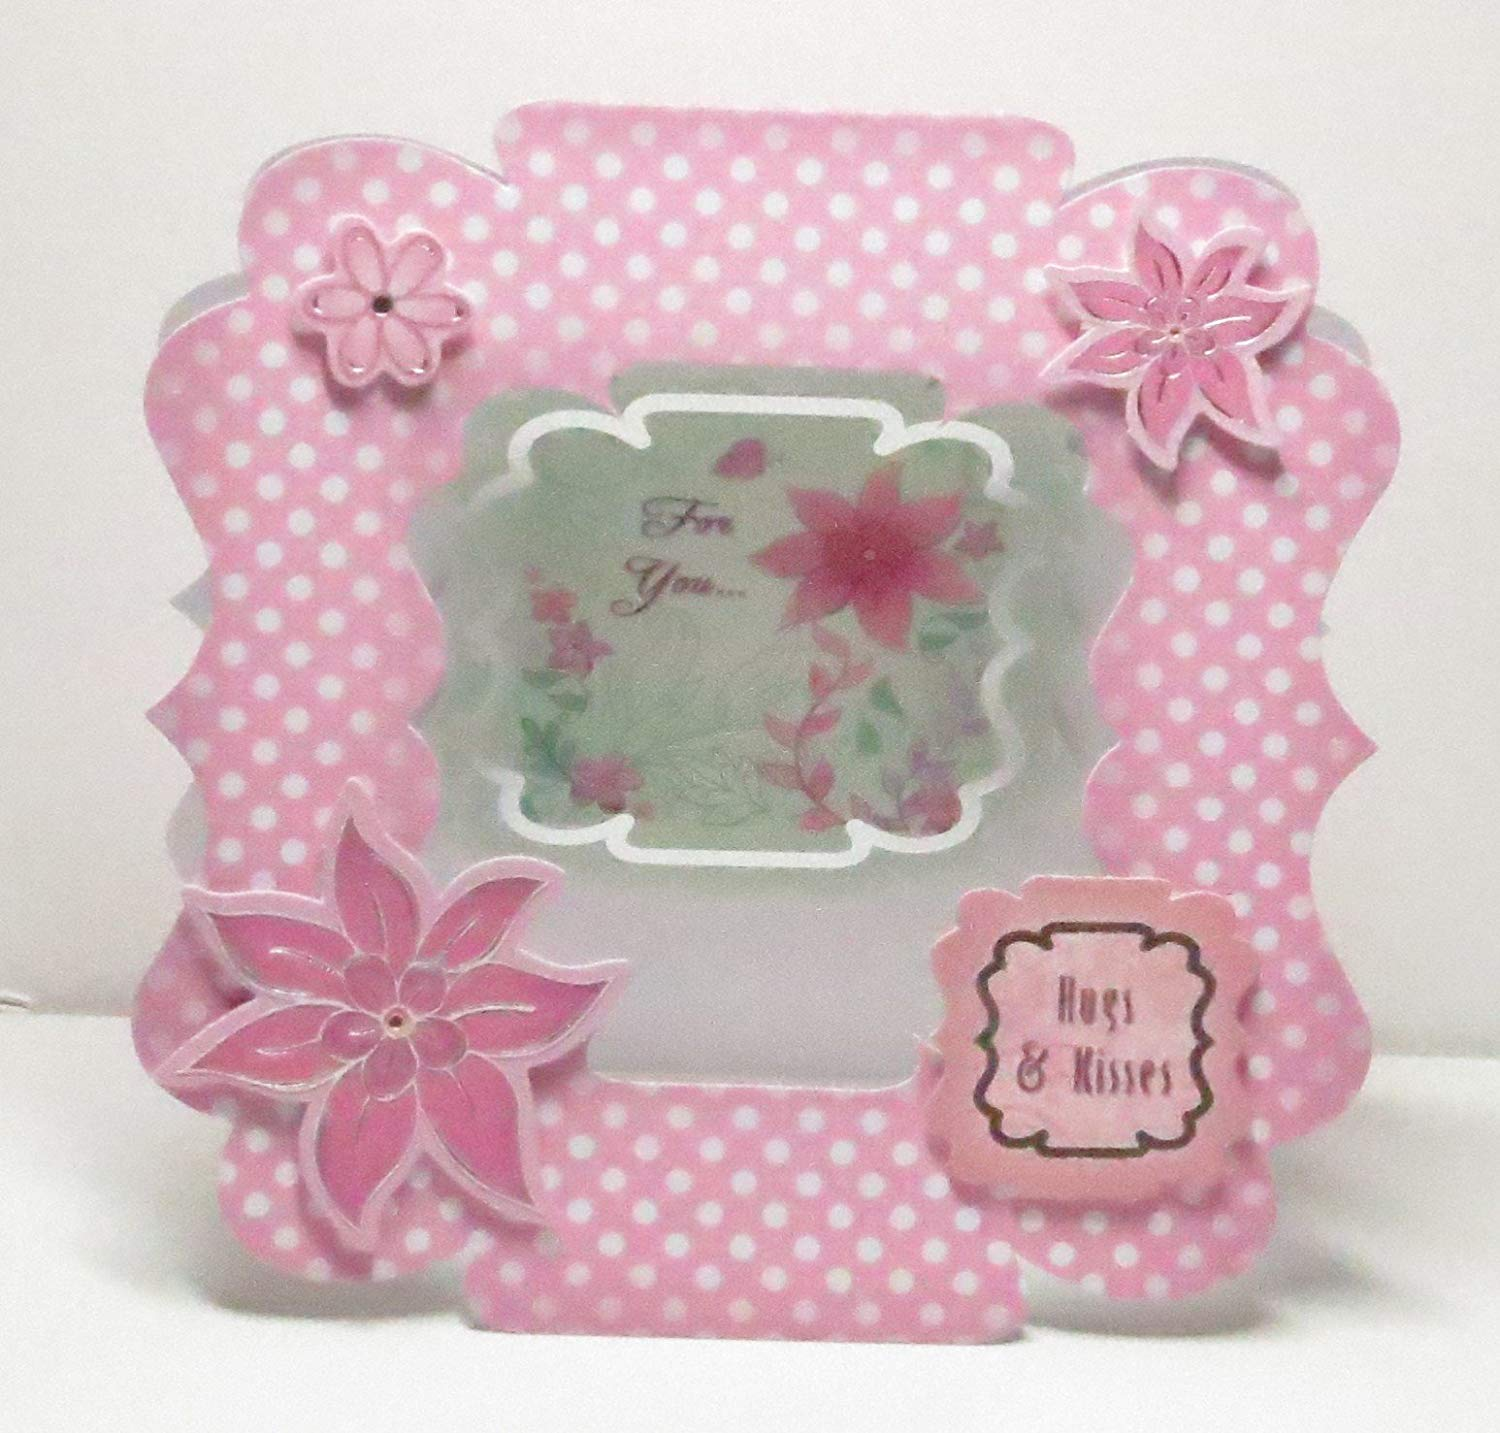 Handmade 3D Pink Flowers Fancy Shaped Hugs & Kisses For You Fancy Aperture Greeting Card with Silver Foiling & Pink & White Polka Dots & Light Green - 1 in stock, 2 made to order